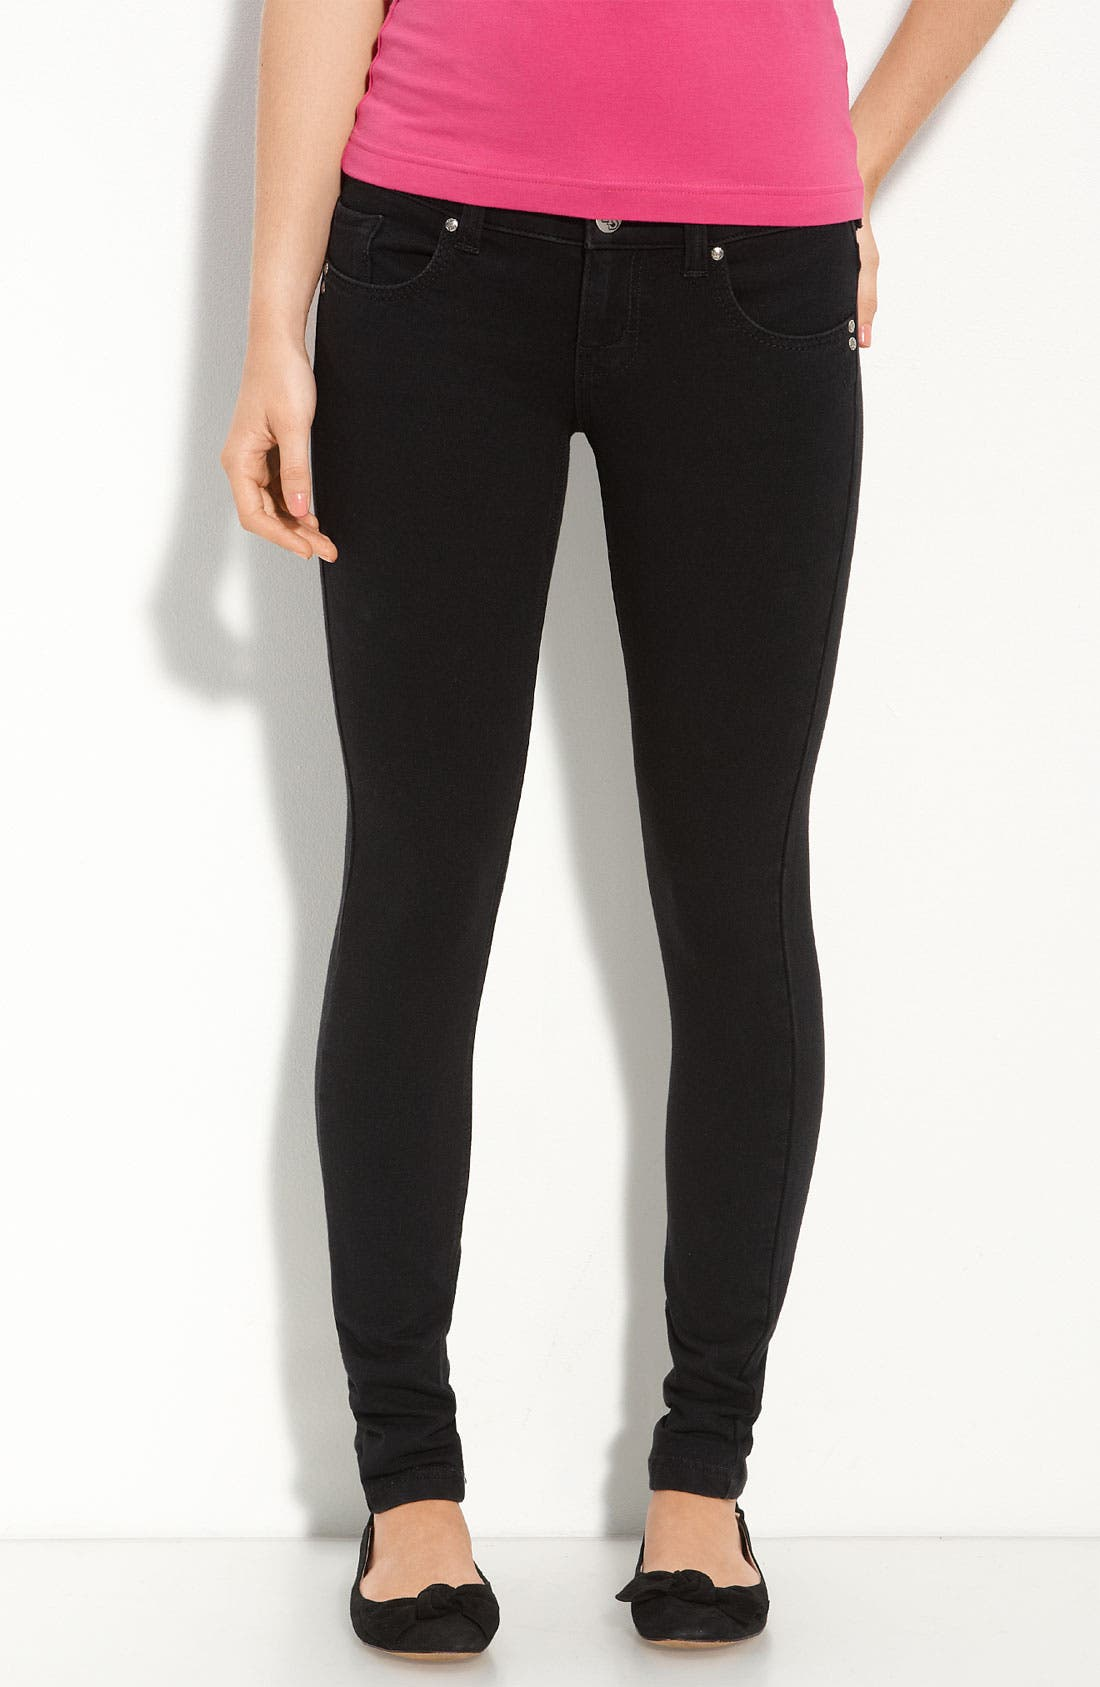 Alternate Image 1 Selected - STS Blue Ponte Knit Leggings (Juniors)